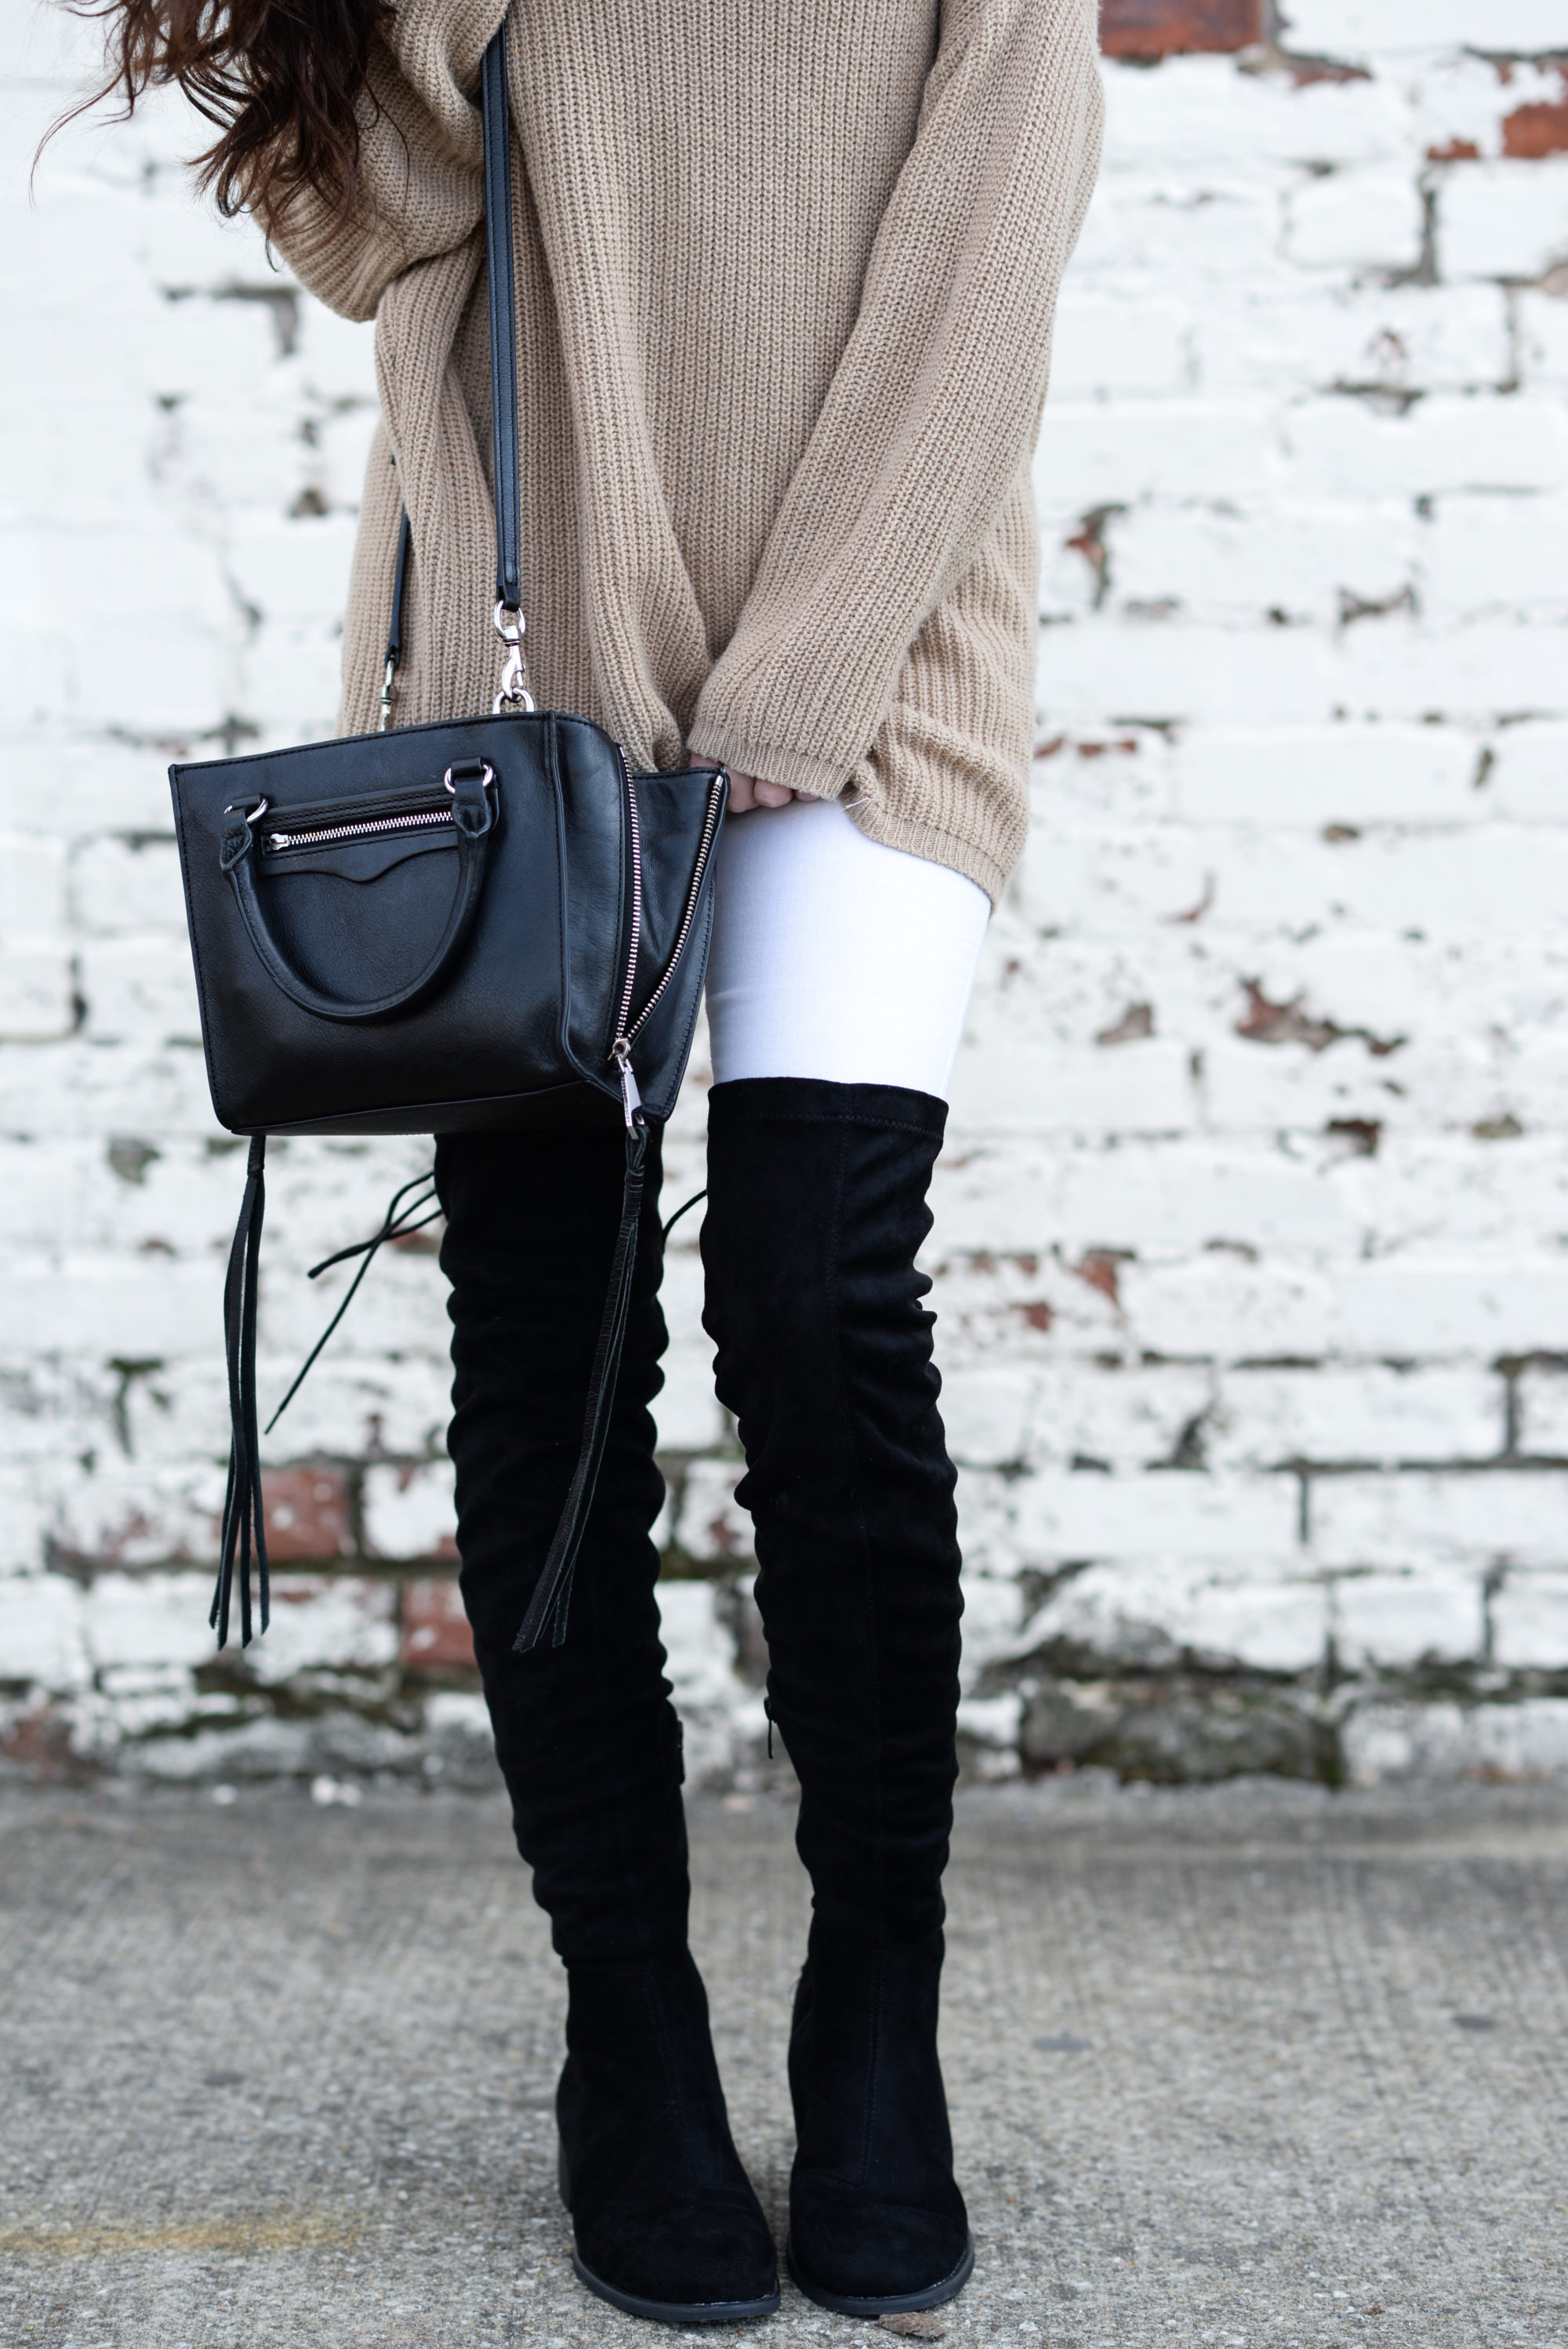 comfy casual style, how to be comfy and warm, casual winter style, winter outfit ideas, how to wear over the knee boots, cheap over the knee boots, cute over the knee boots, tie up over the knee boots, casual outfit ideas, casual winter style